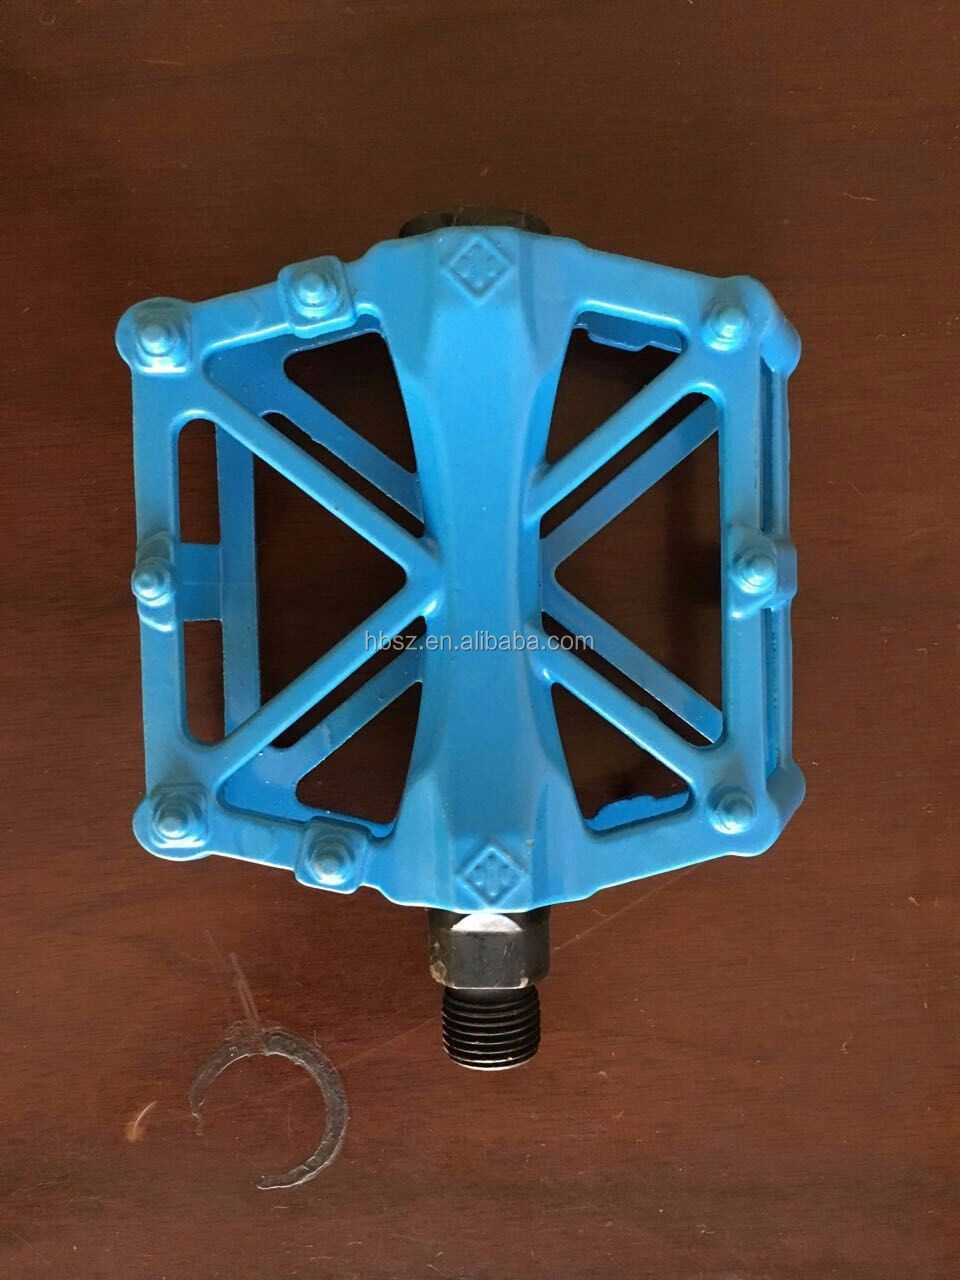 new bicycle accessories aluminium alloy bicycle pedal for mountain bike city bike bicycle cheap price bmx parts